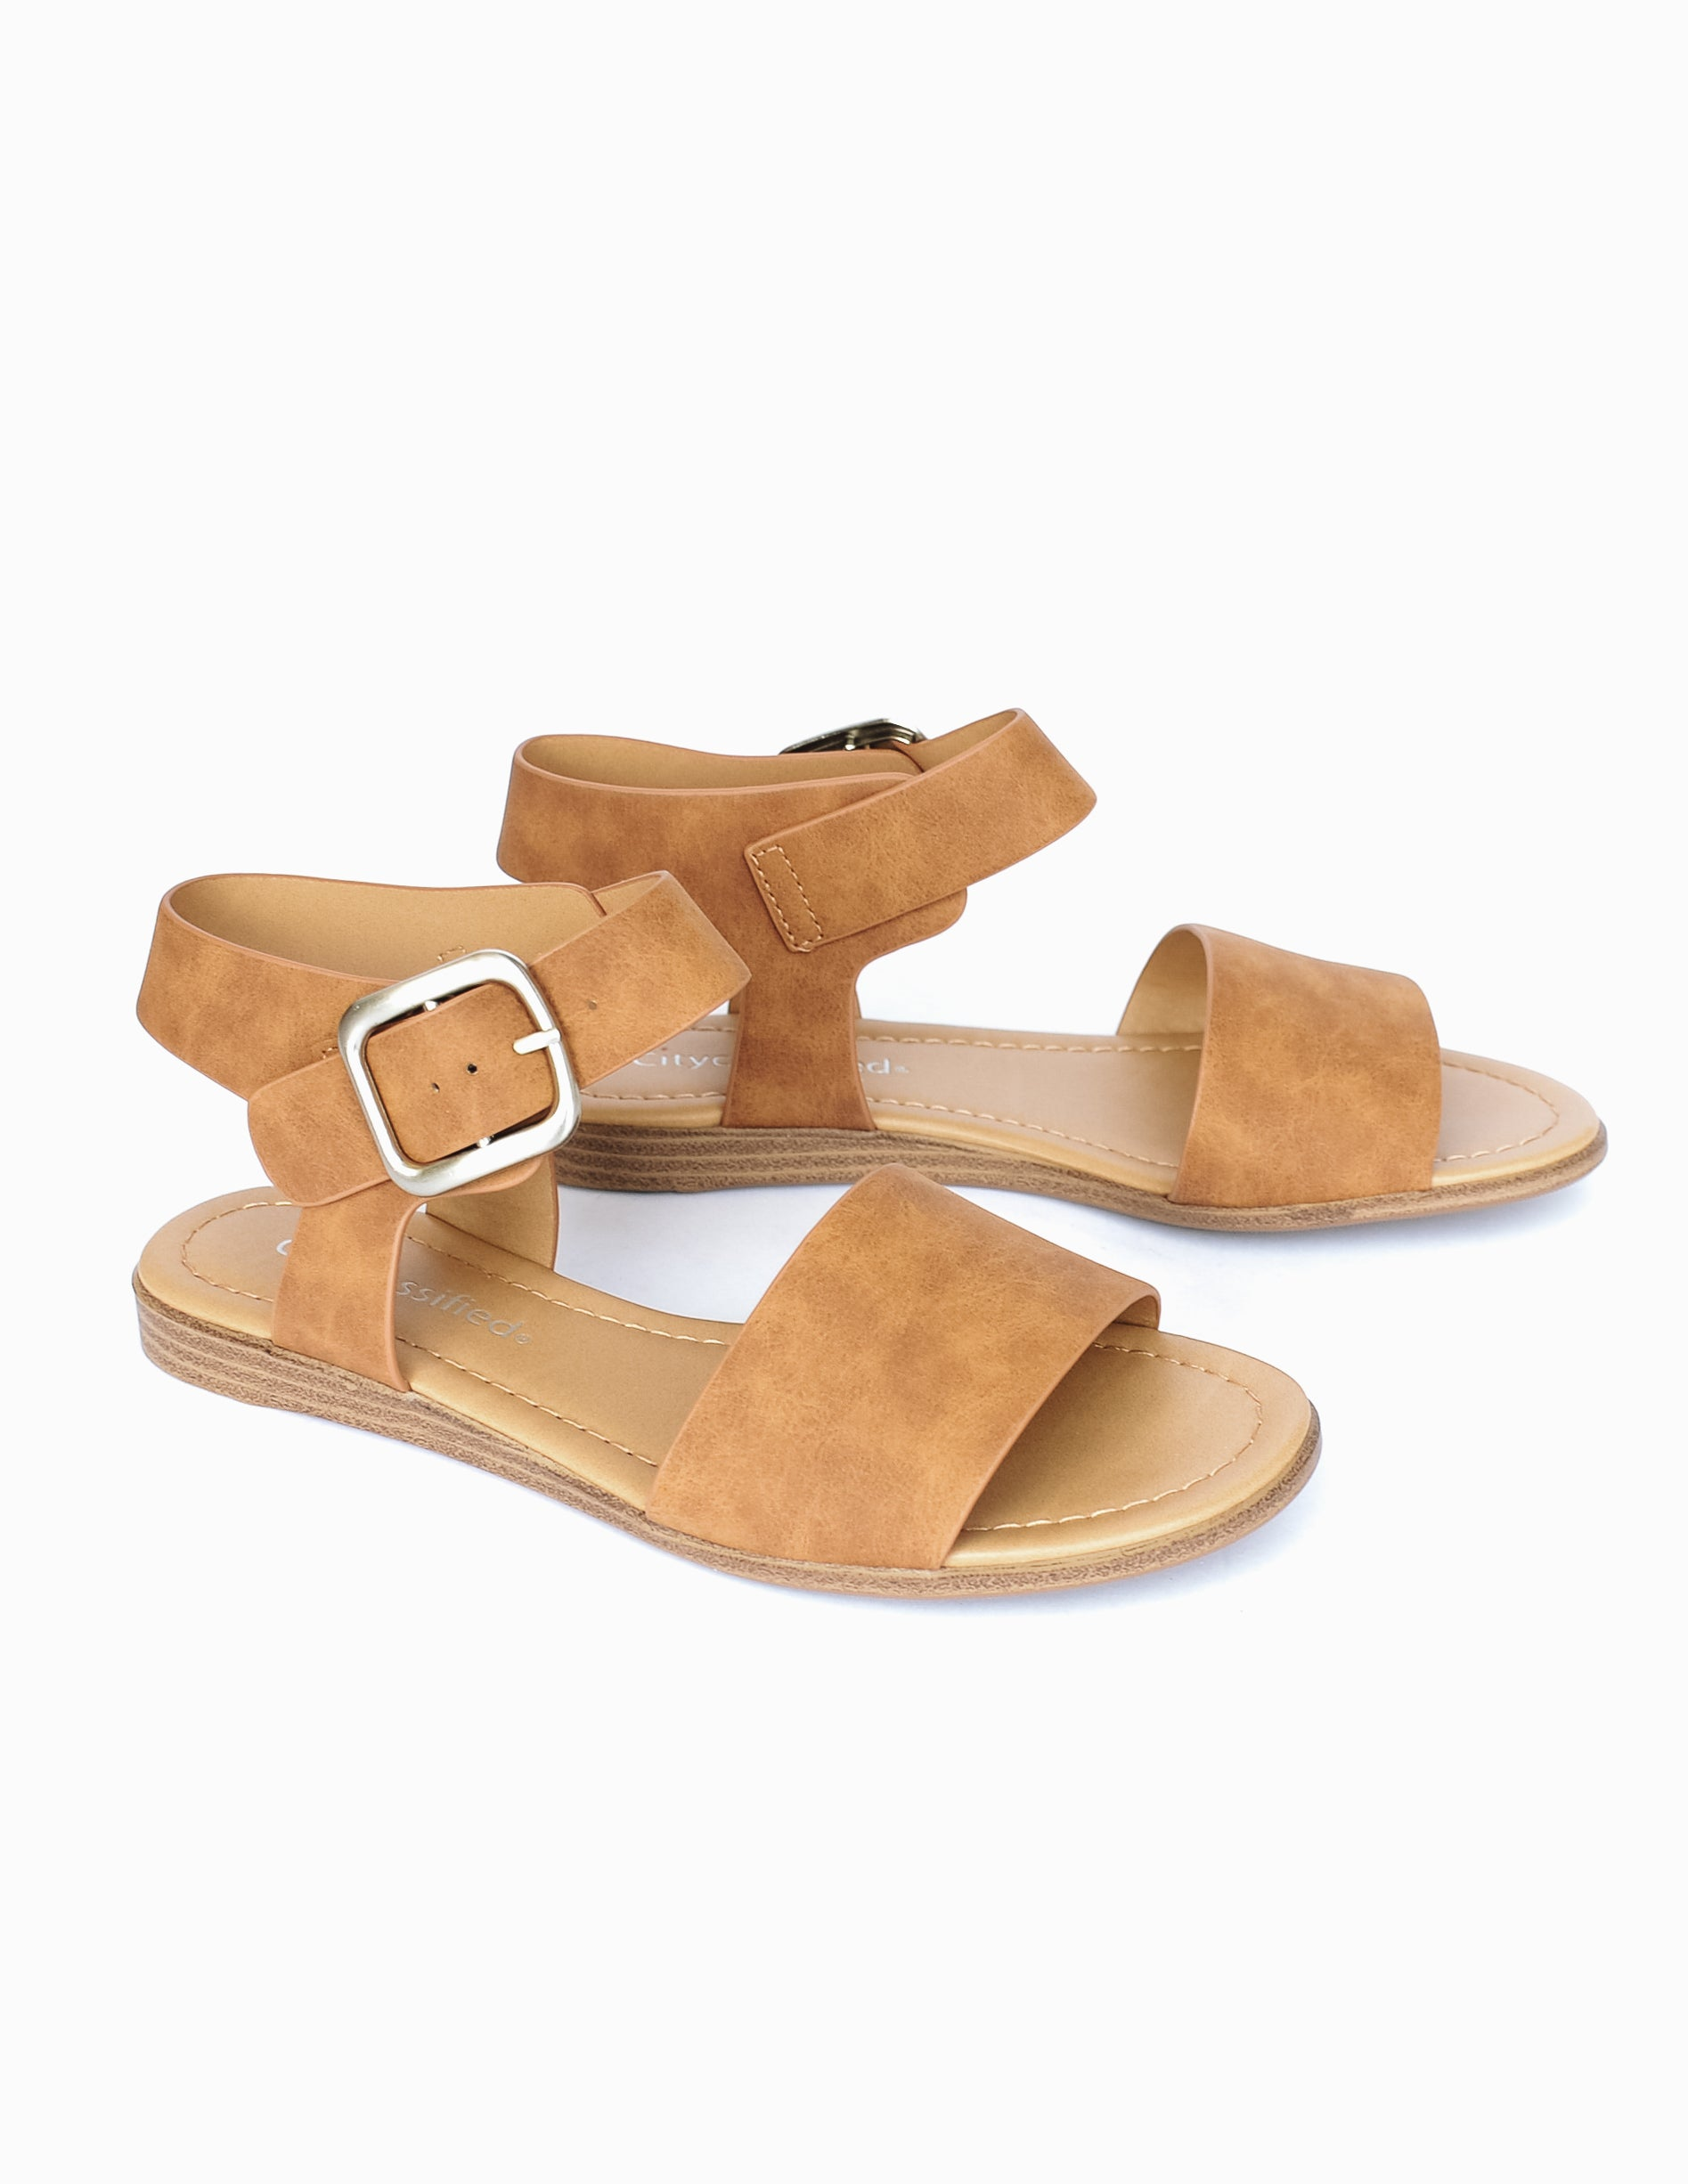 Camel colored sandal with tan insole and faux wood sole